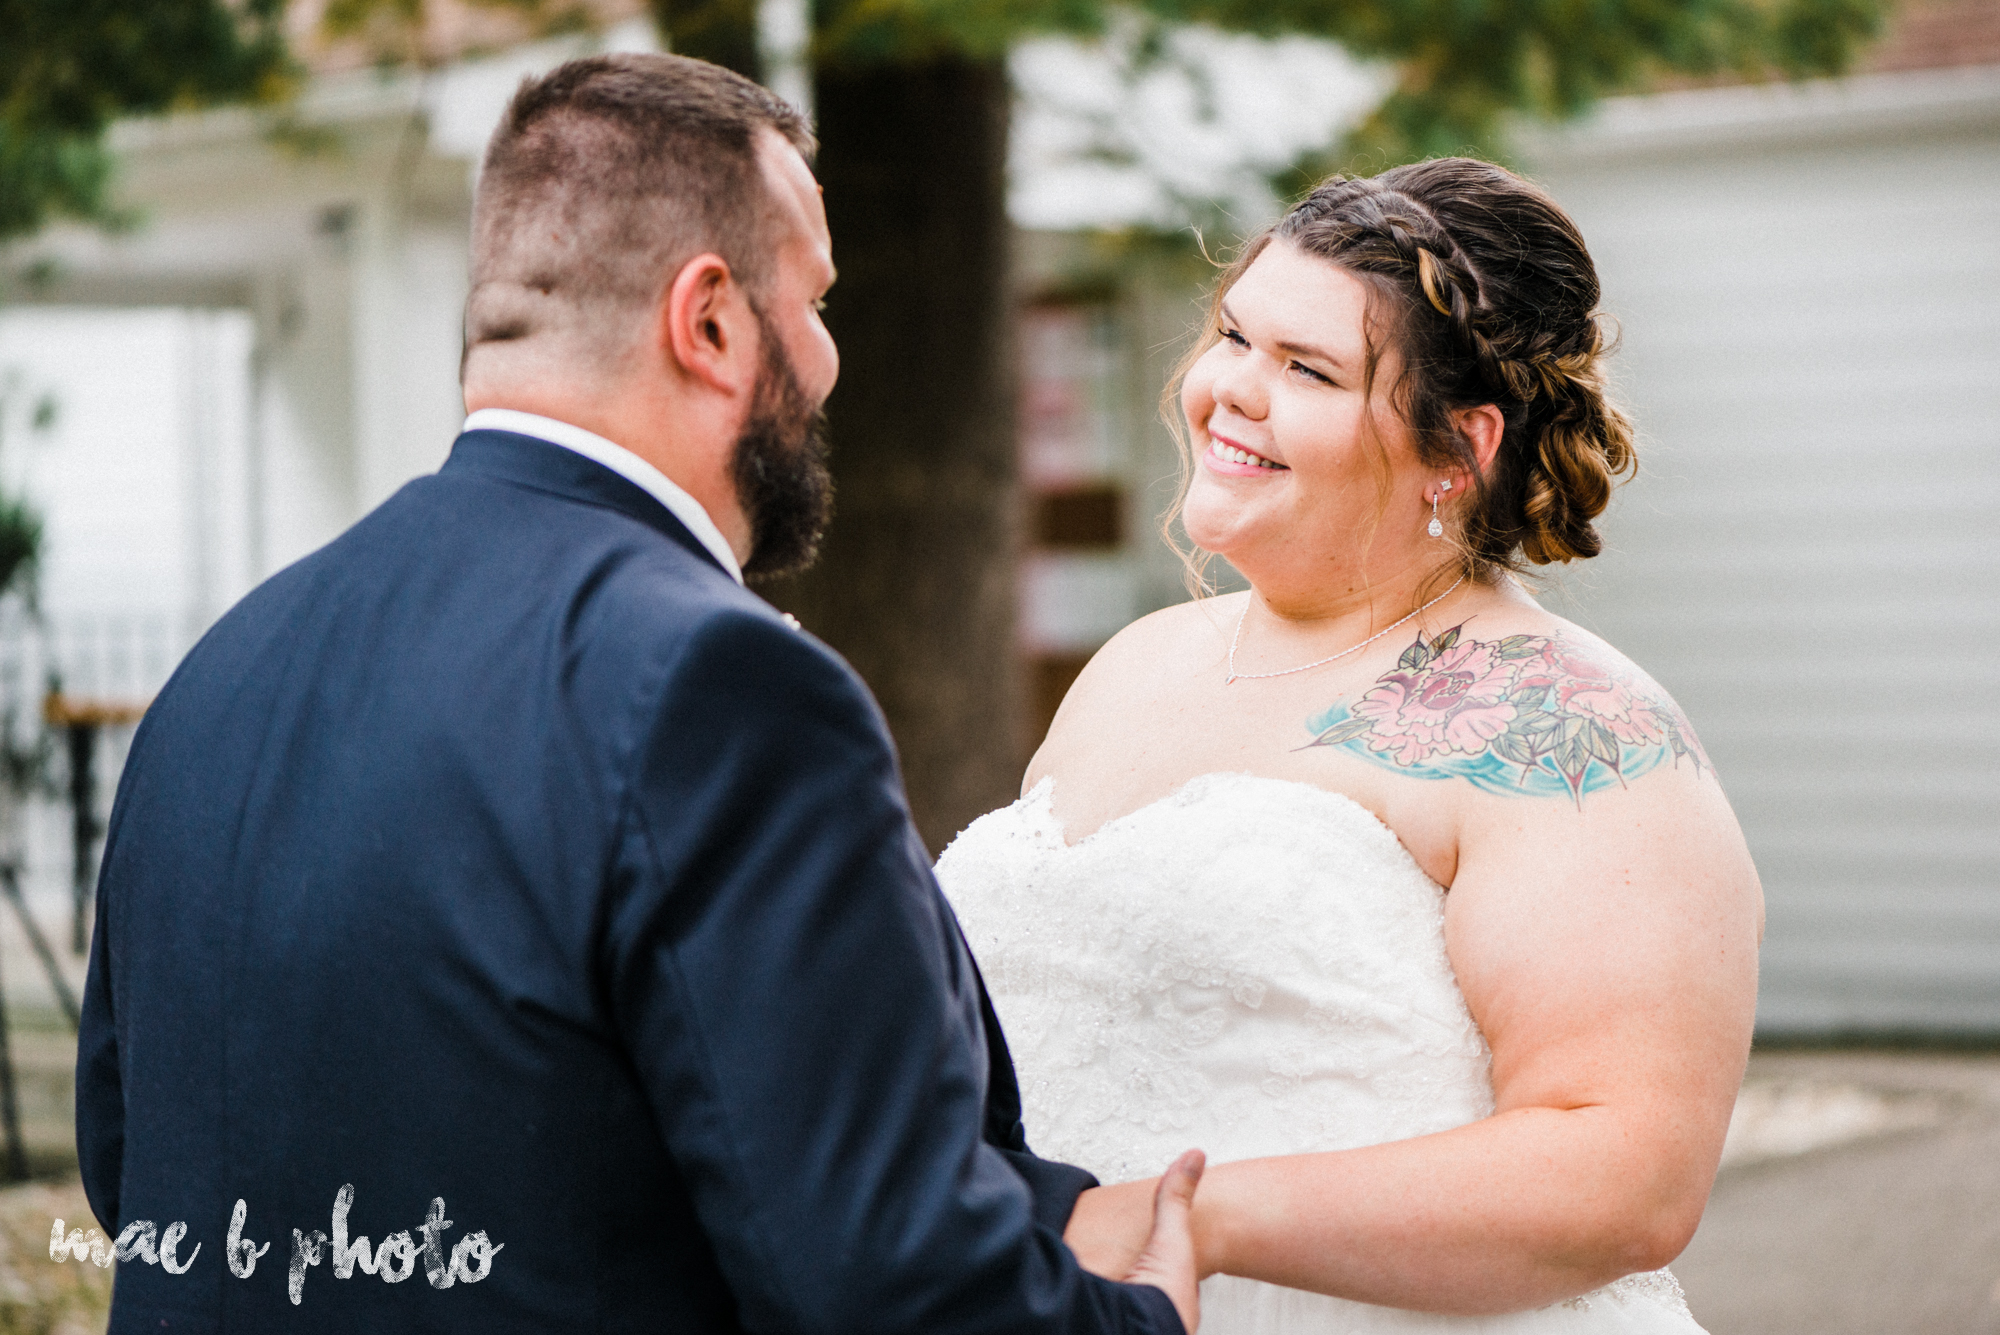 Kristina and ryan's personal vintage glam fall wedding at disalvo's station restaurant and the arnold palmer latrobe country club in latrobe, pa photographed by youngstown wedding photographer mae b photo-30.jpg